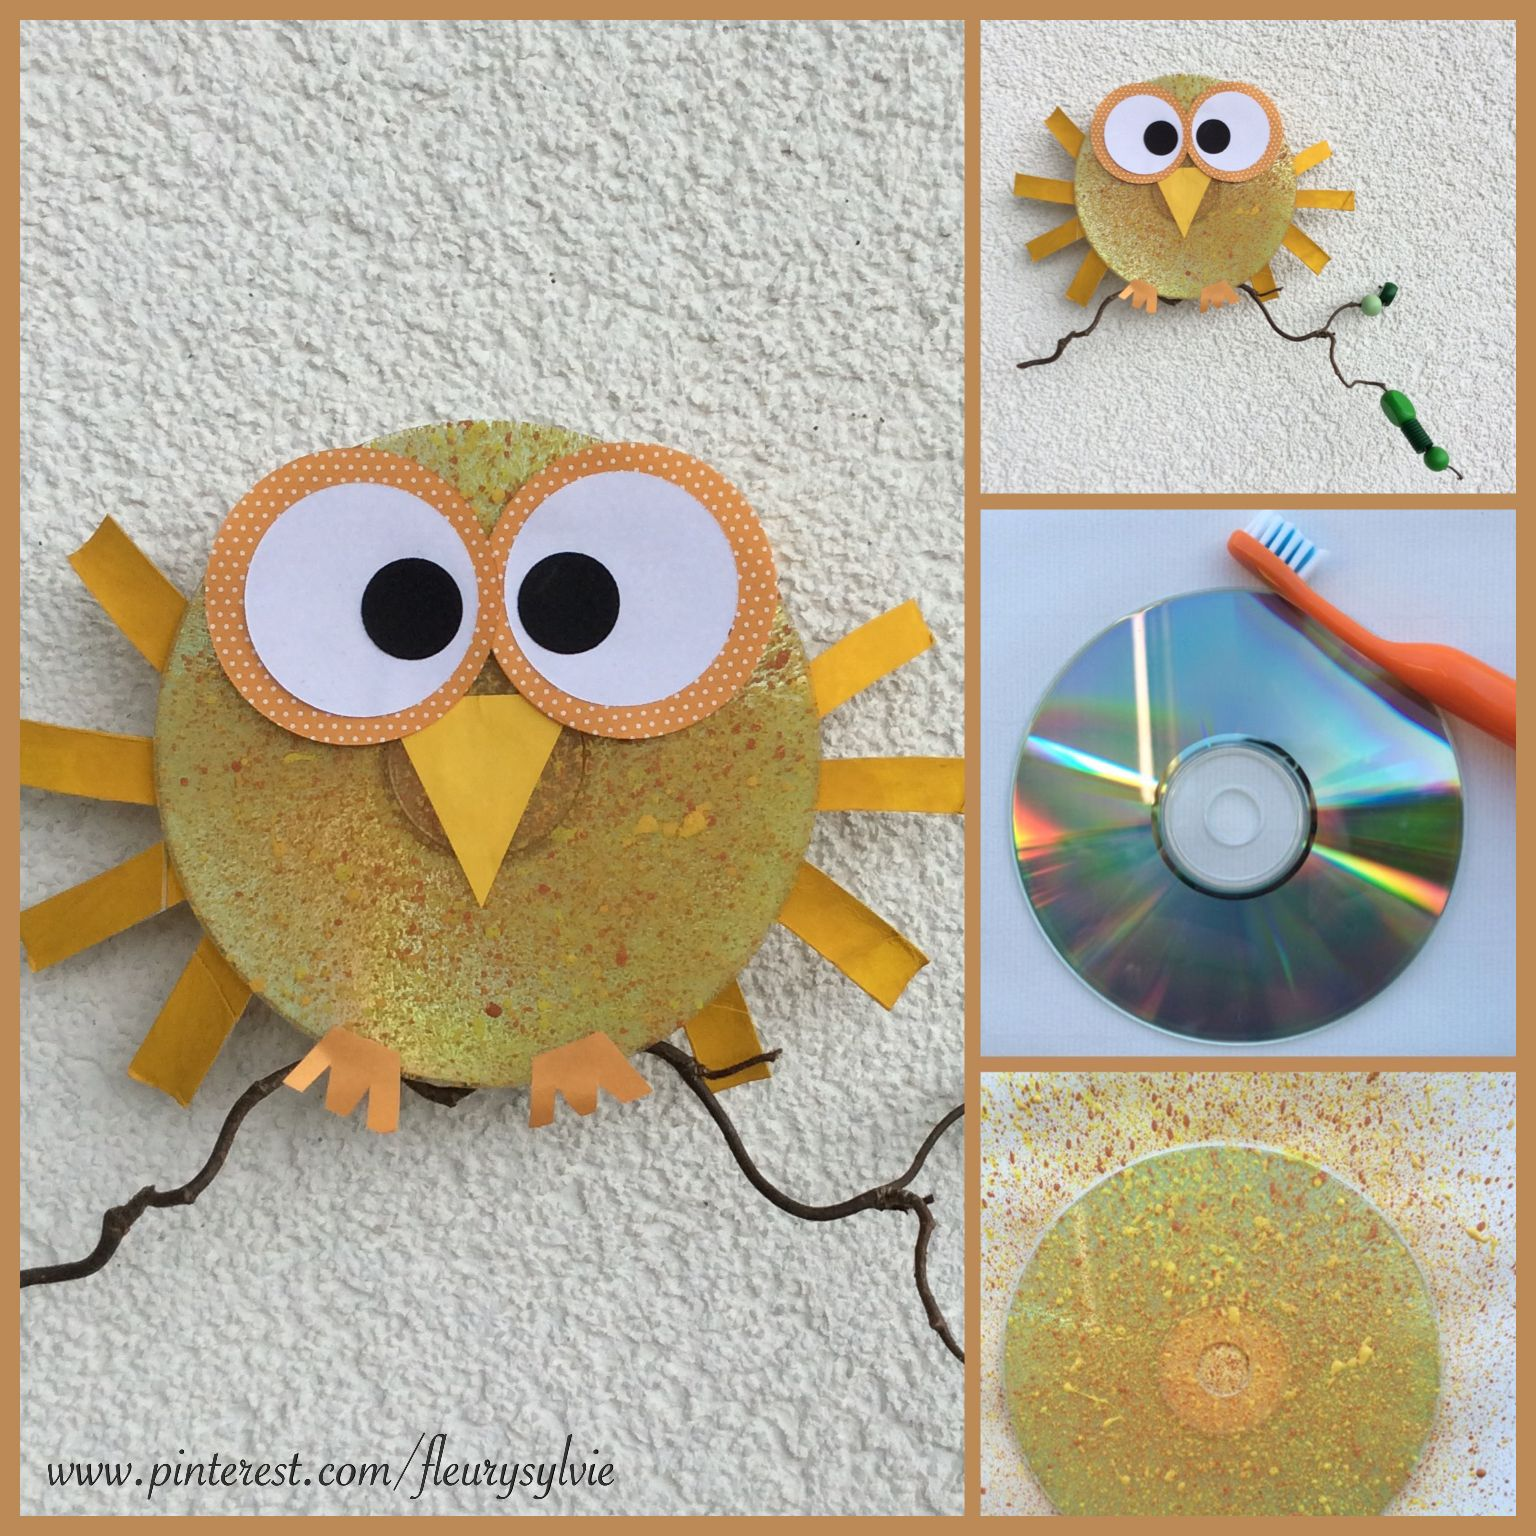 bricolage enfant un hibou avec un cd peint avec la technique de la brosse dent http. Black Bedroom Furniture Sets. Home Design Ideas